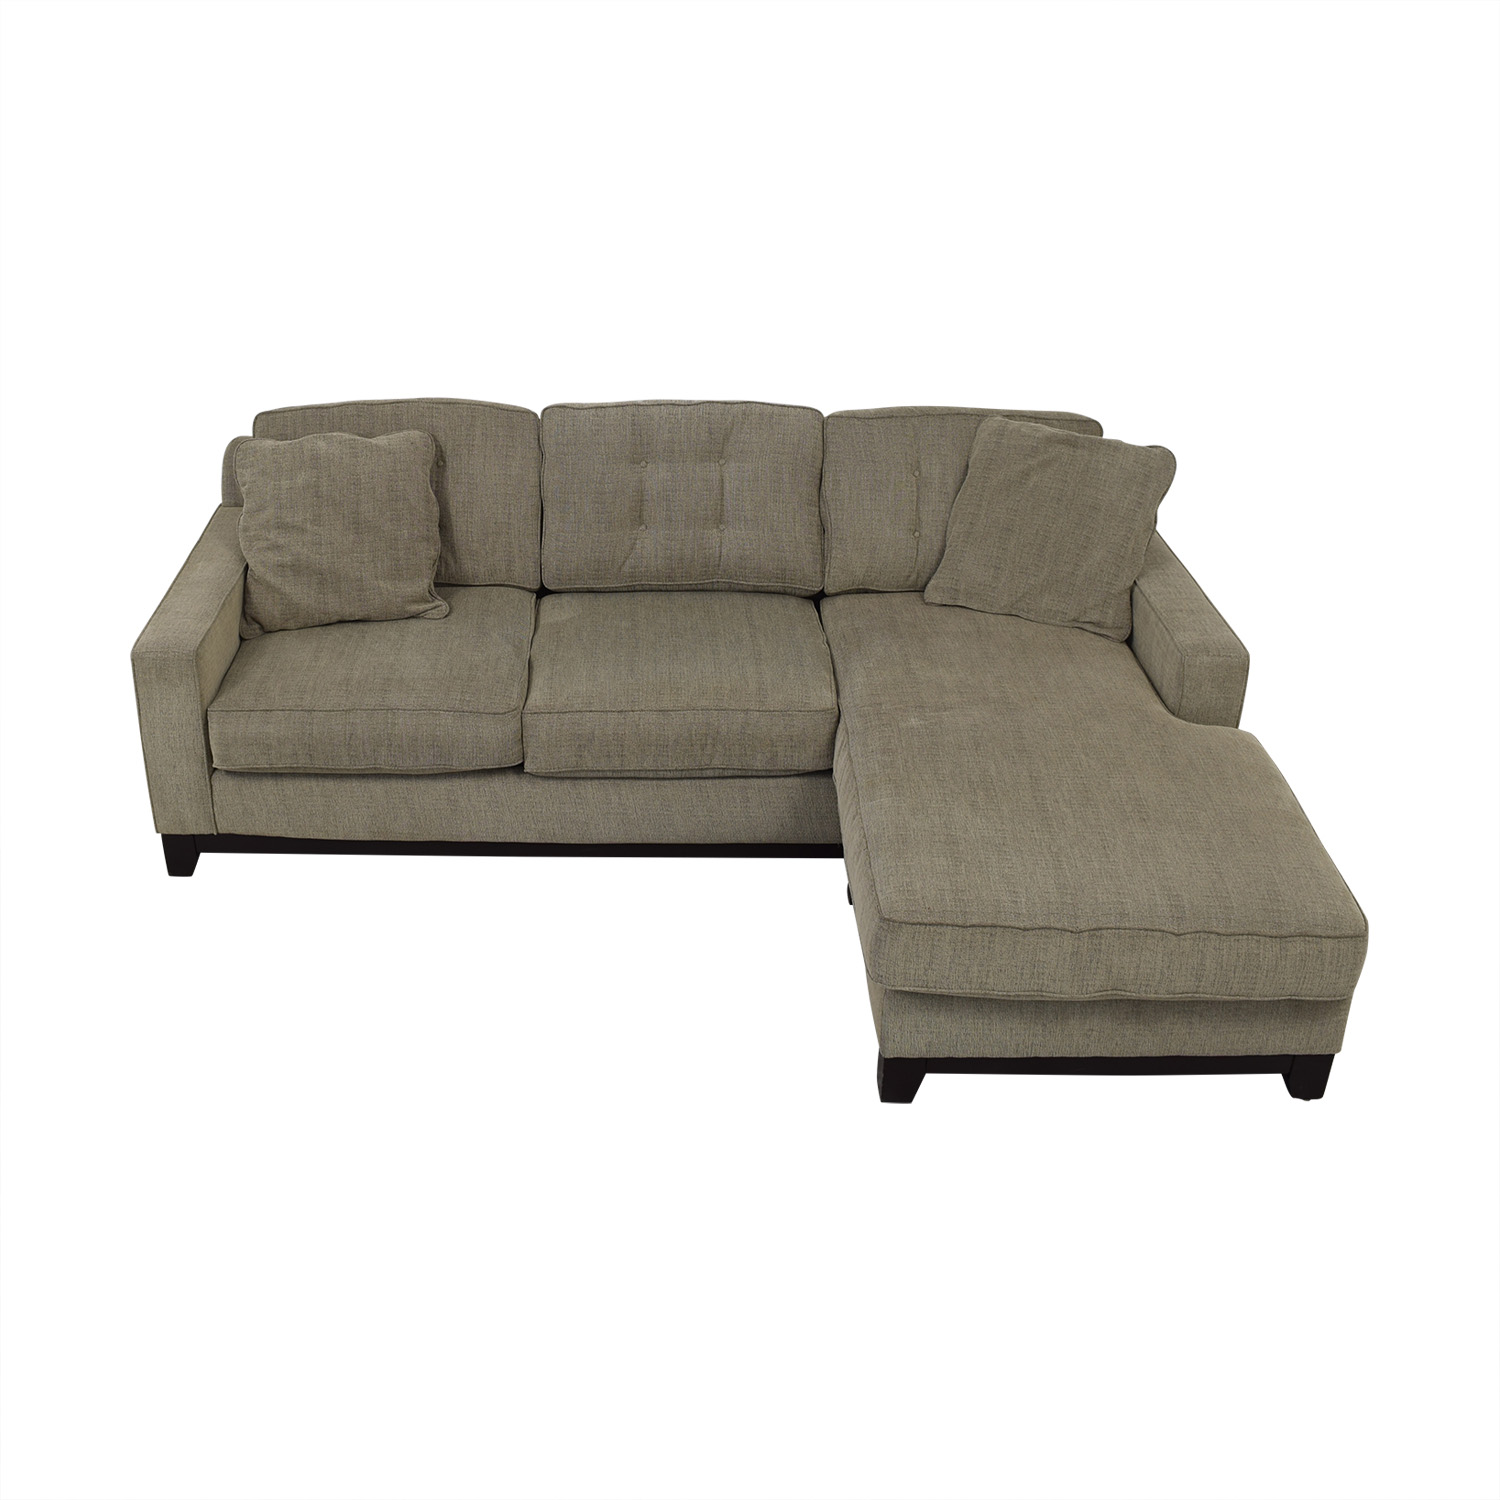 Macy's Grey Semi-Tufted Chaise Sectional Macy's